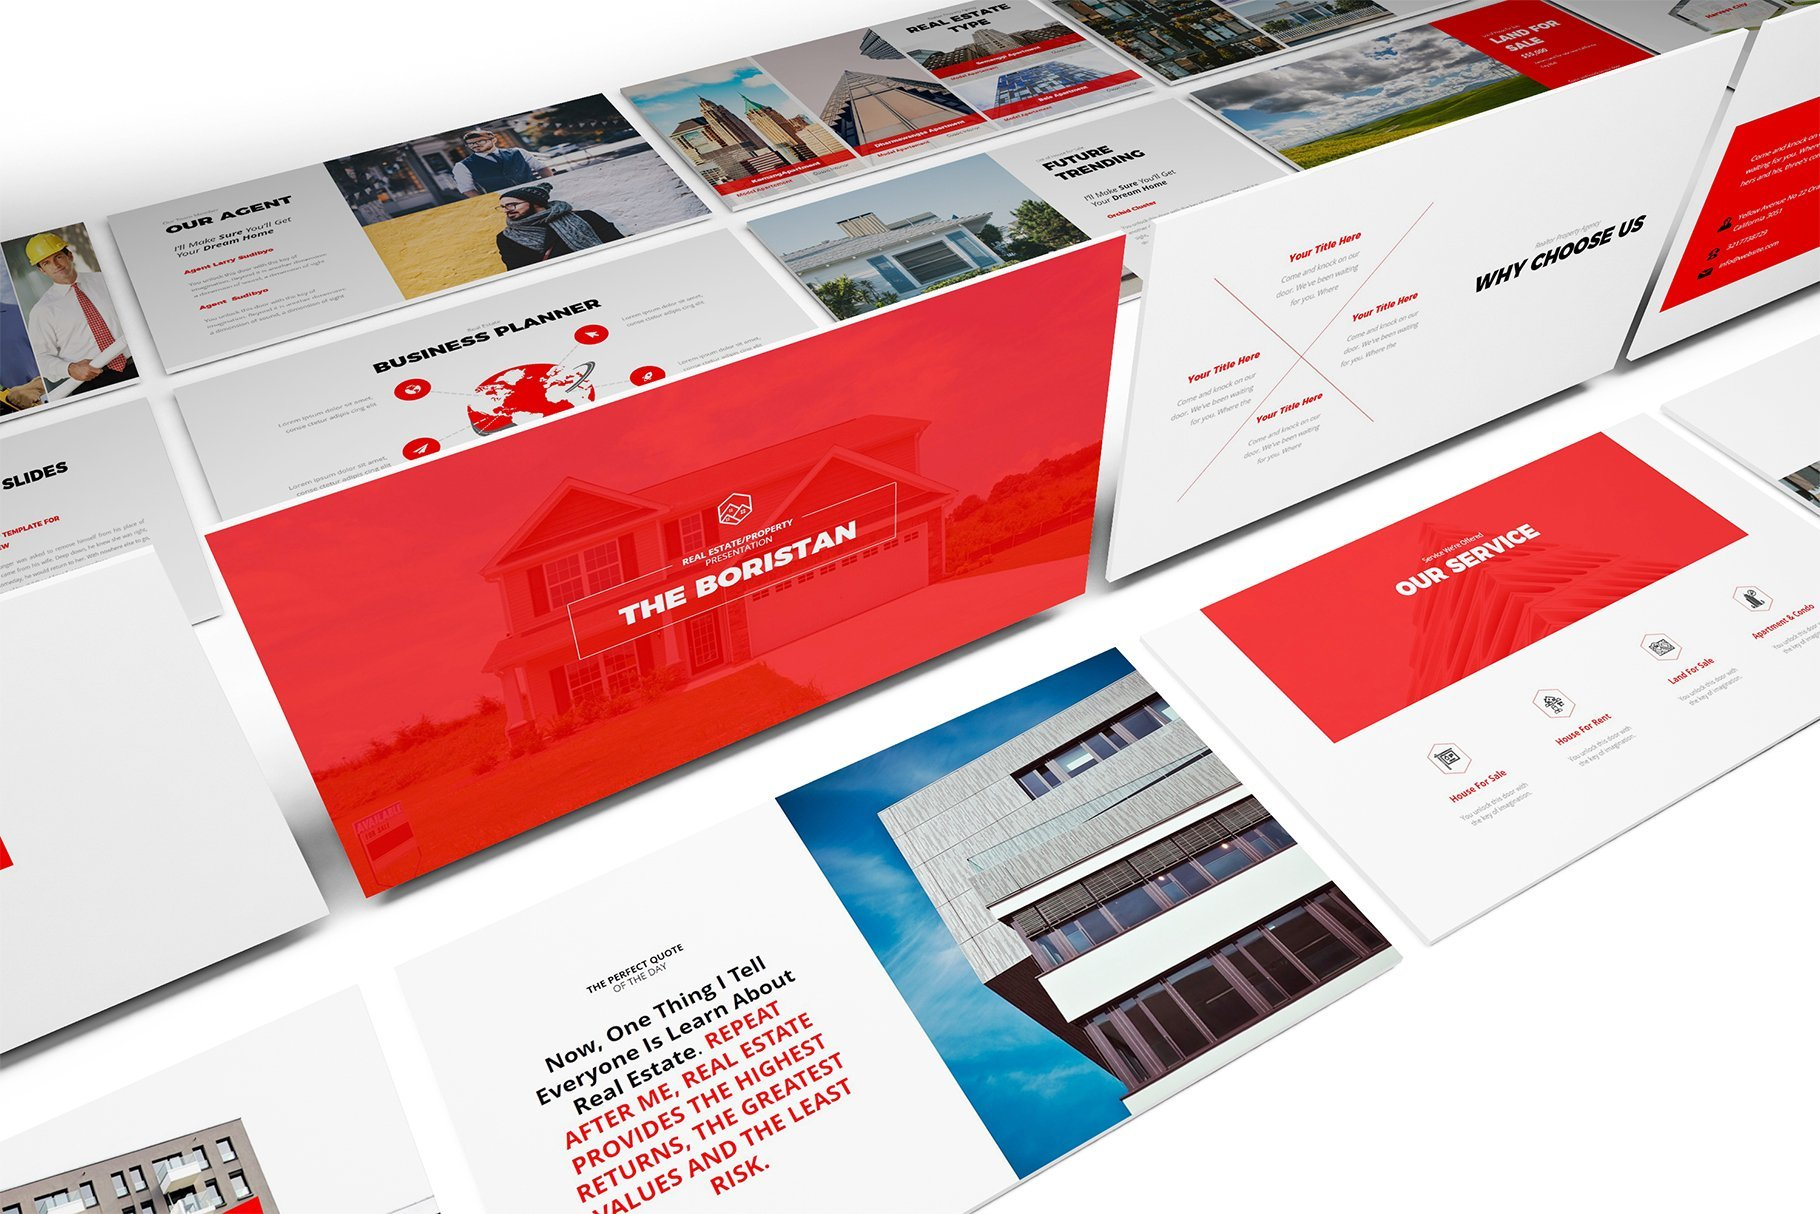 The template has a lot of accentuating elements to emphasize the main thing.